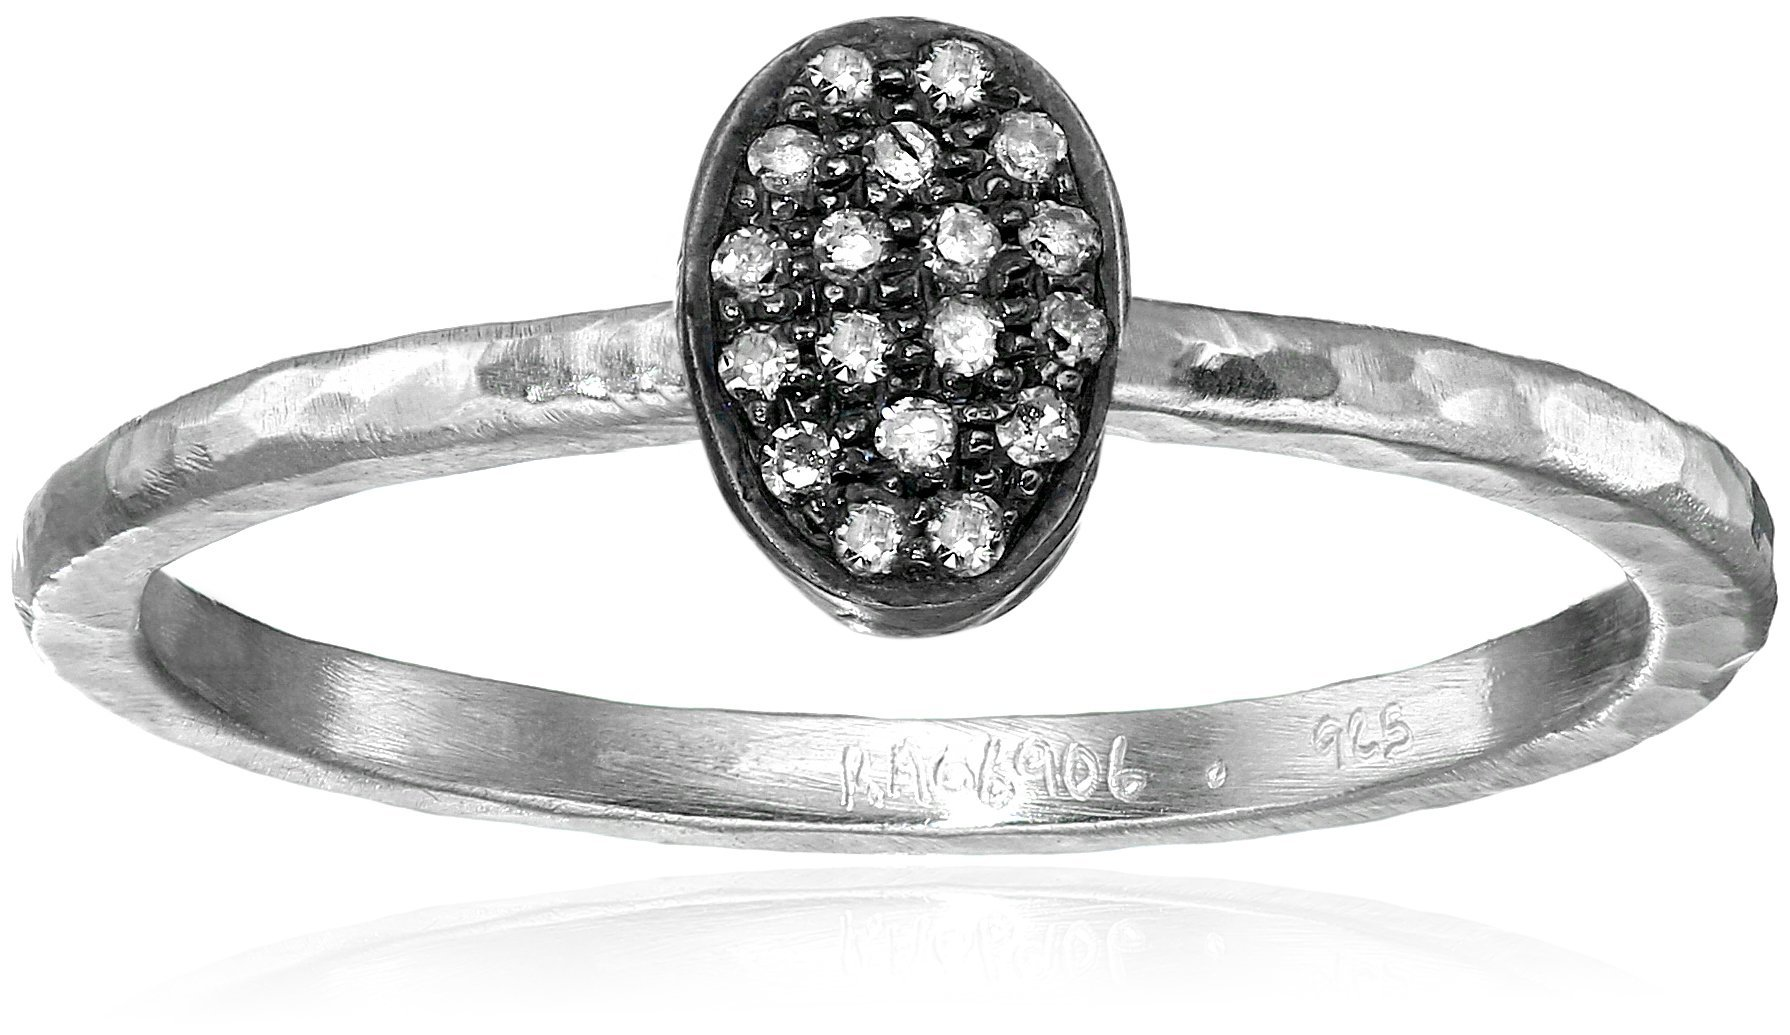 GURHAN Jordan Pave Diamond Sterling Silver Stackable Ring (1/10cttw, I-J Color, I2 Clarity), Size 6.5